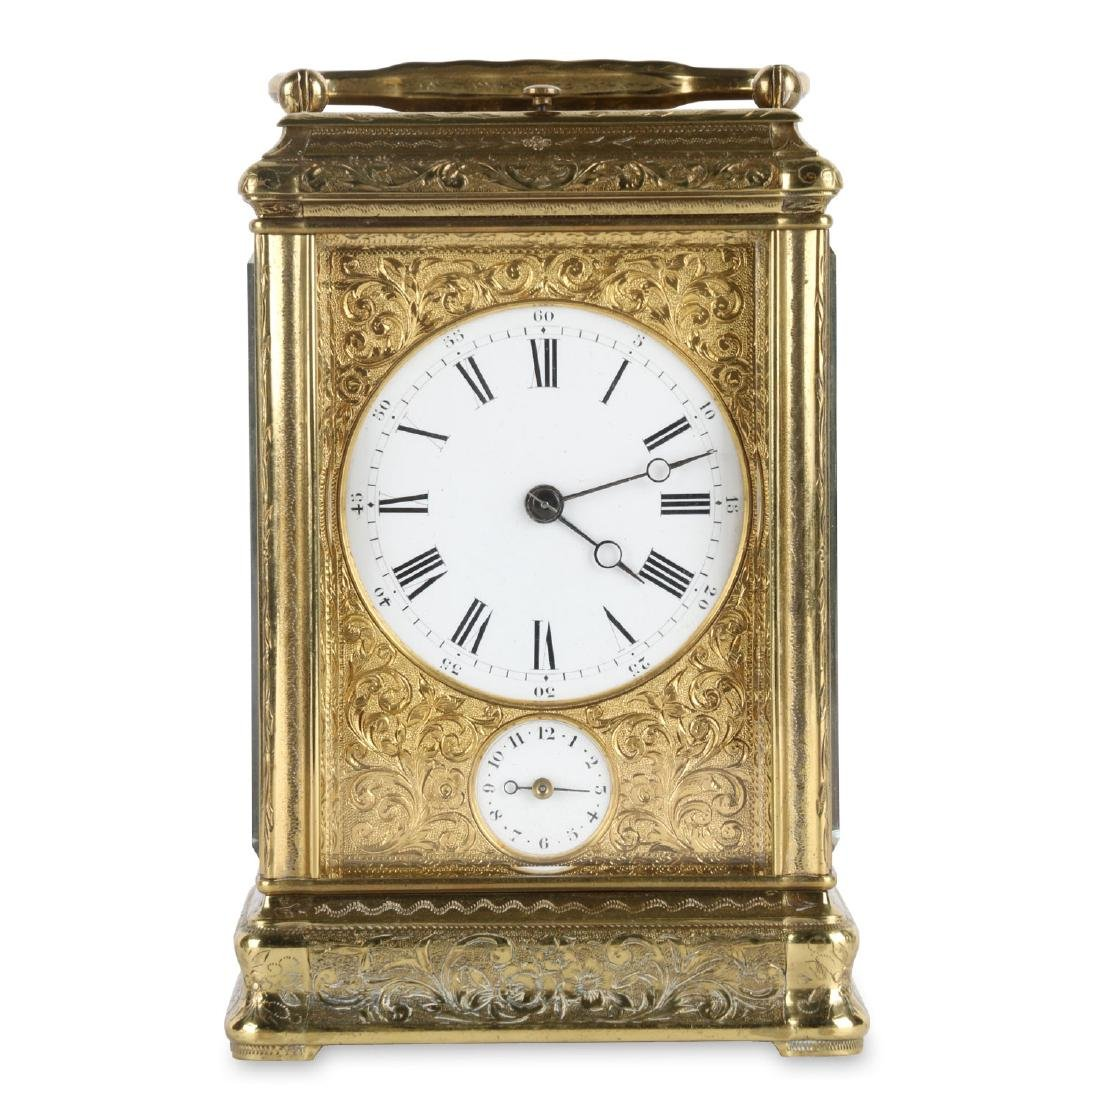 French-Engraved Grande Sonnerie Carriage Clock & Alarm